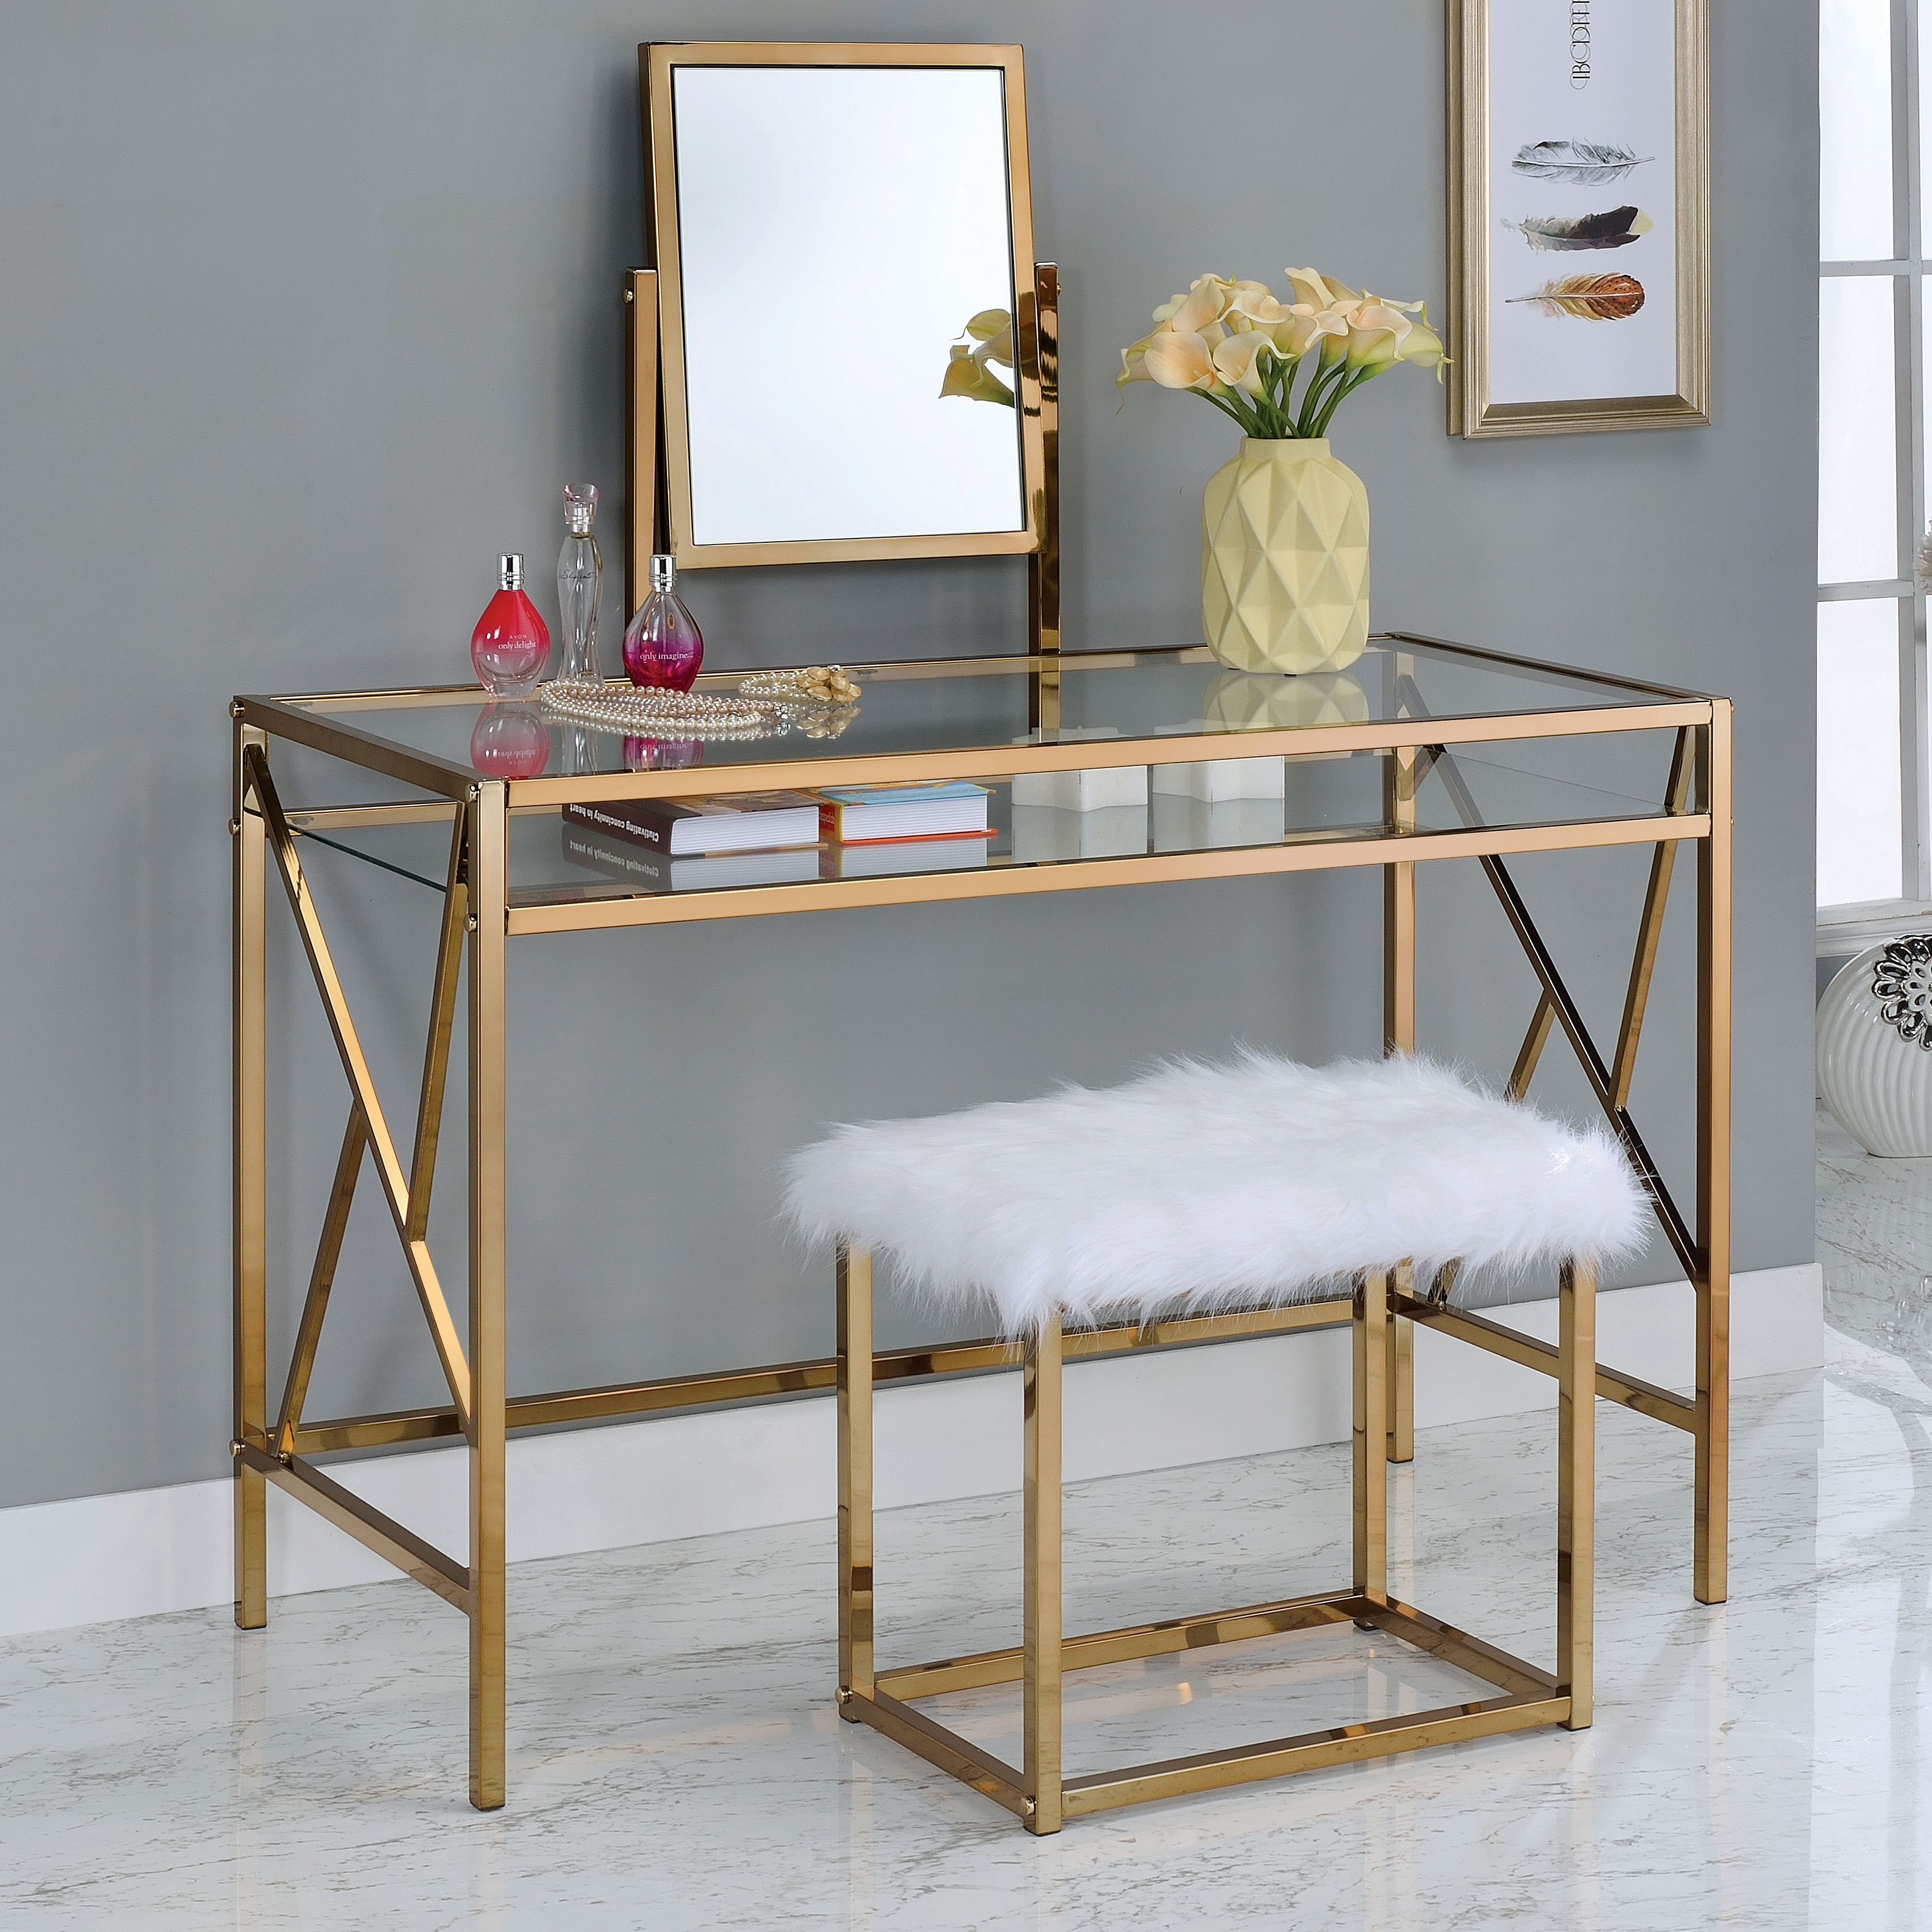 table pin ailees of glass contemporary stool piece fur america glam vanity furniture with faux set